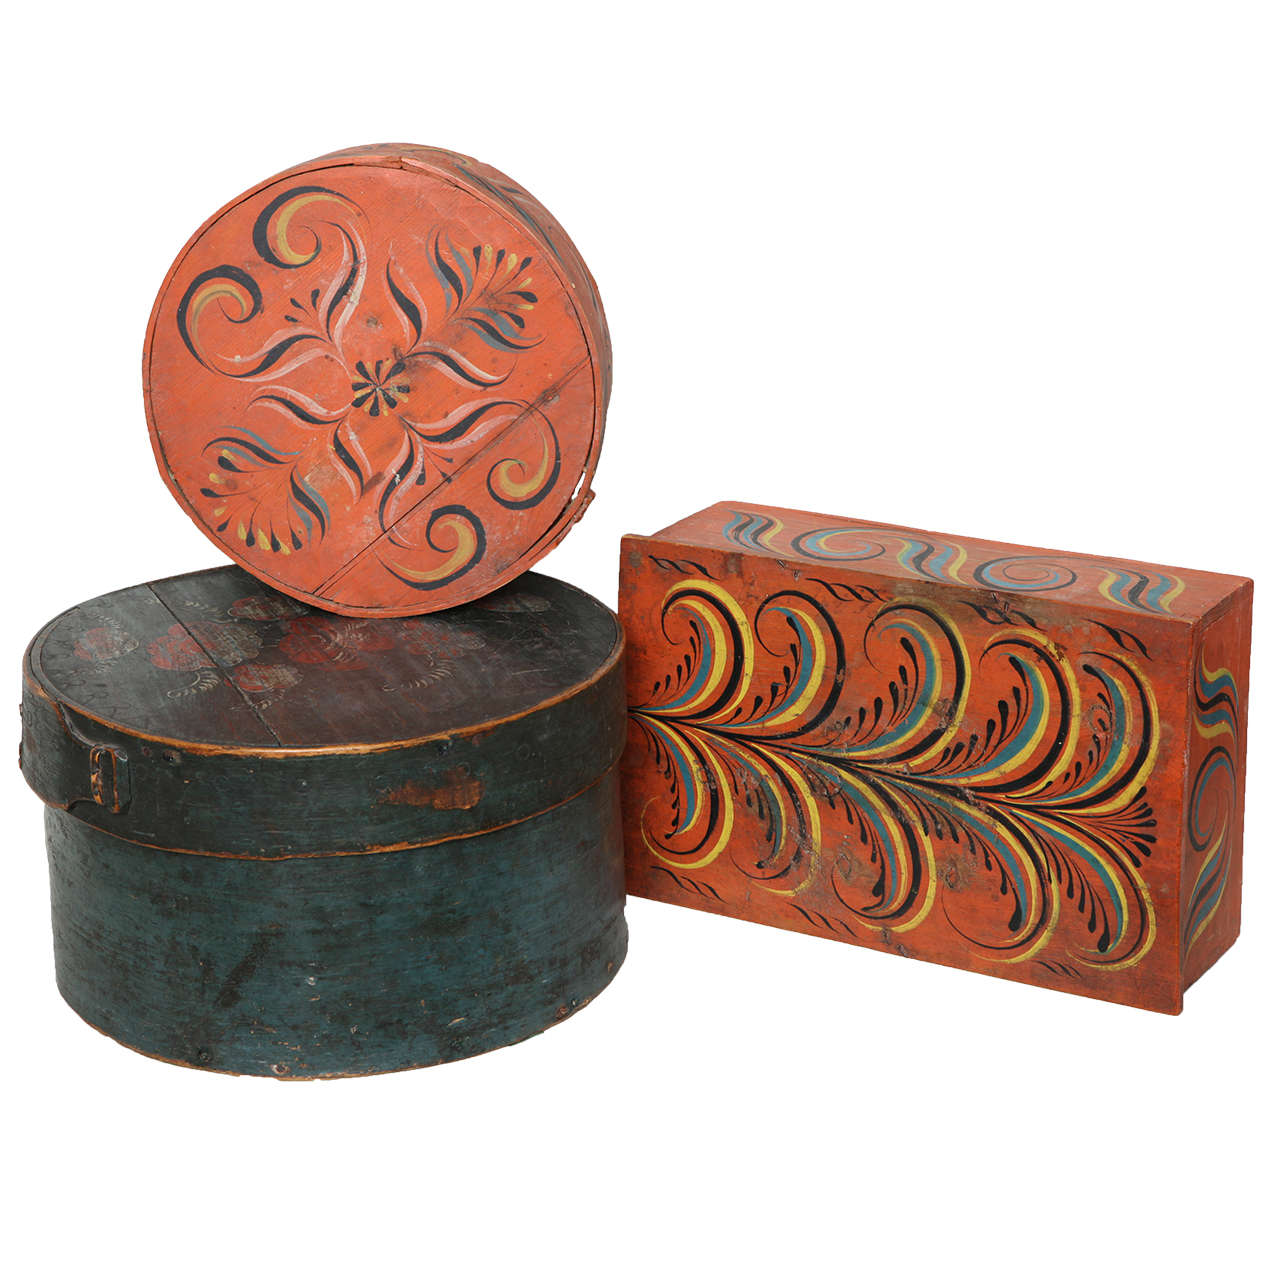 Collection of Three Norwegian Folk Art Boxes